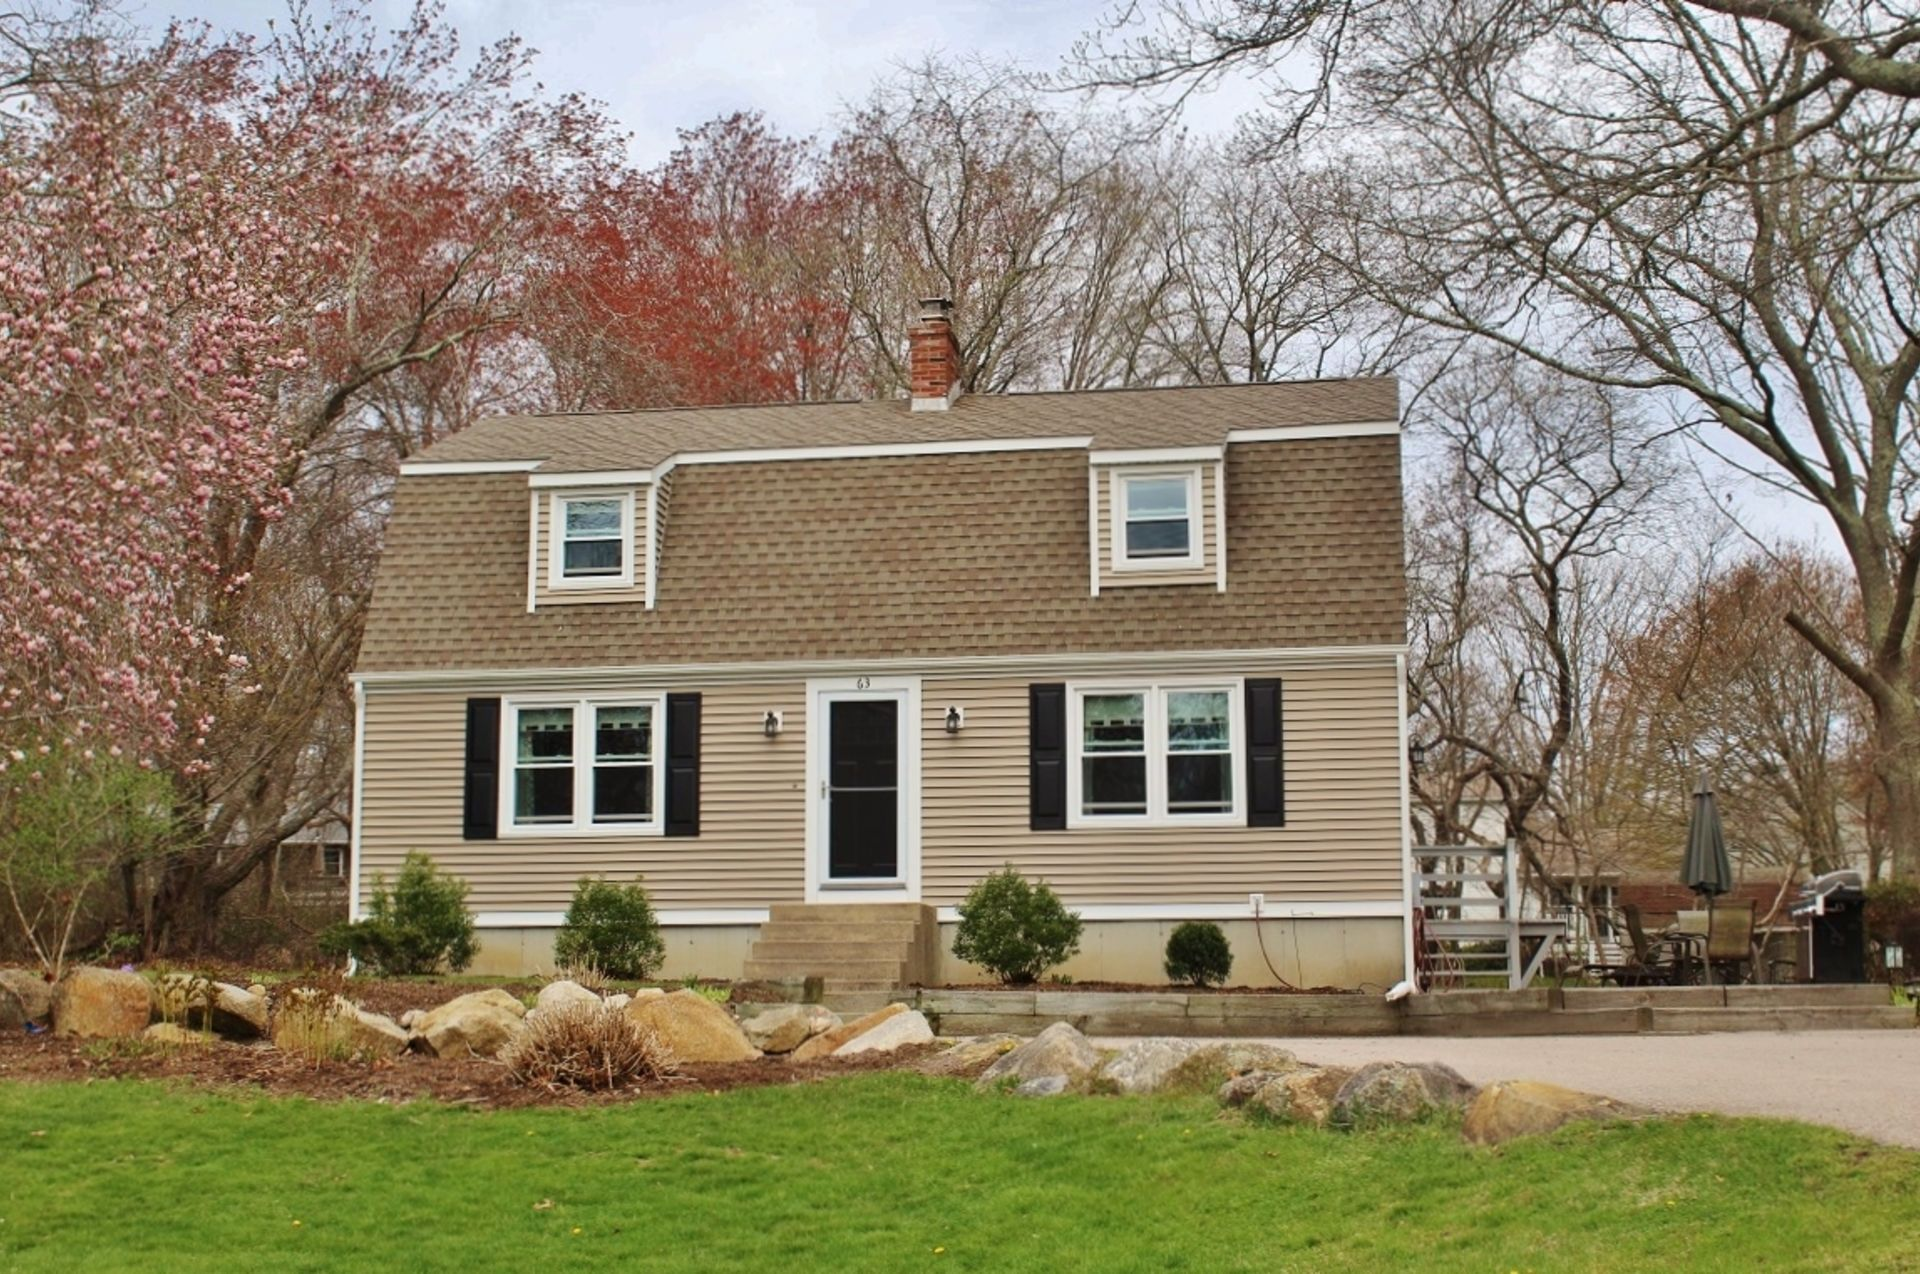 OPEN HOUSE 4-30-2017 (1-3 pm)